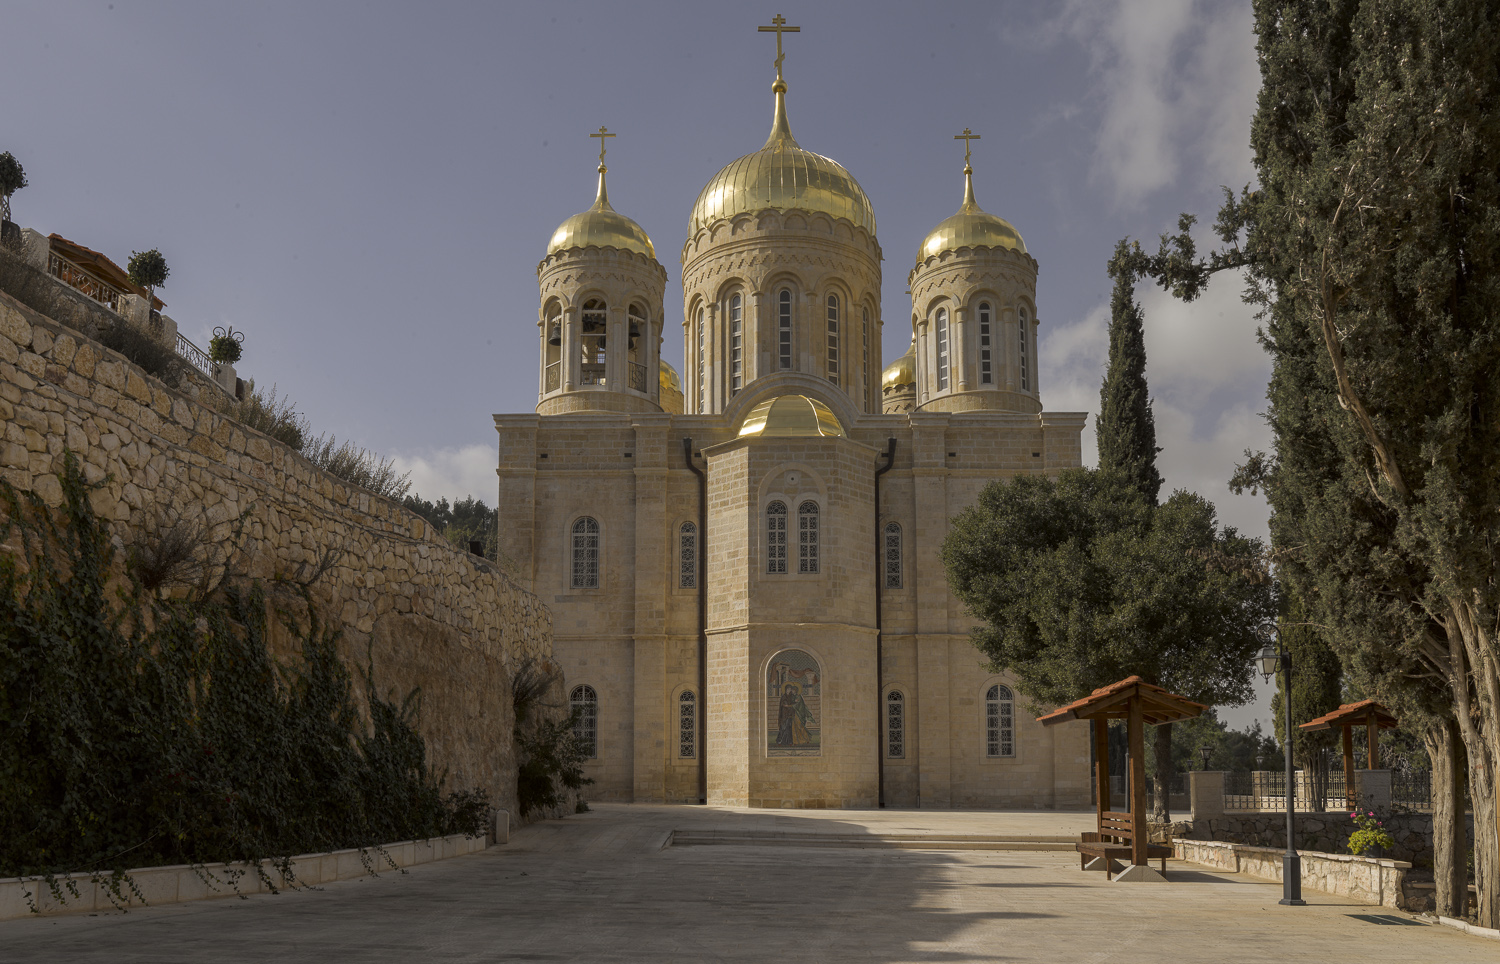 Russian Orthodox Church - Ein Karem, 2010